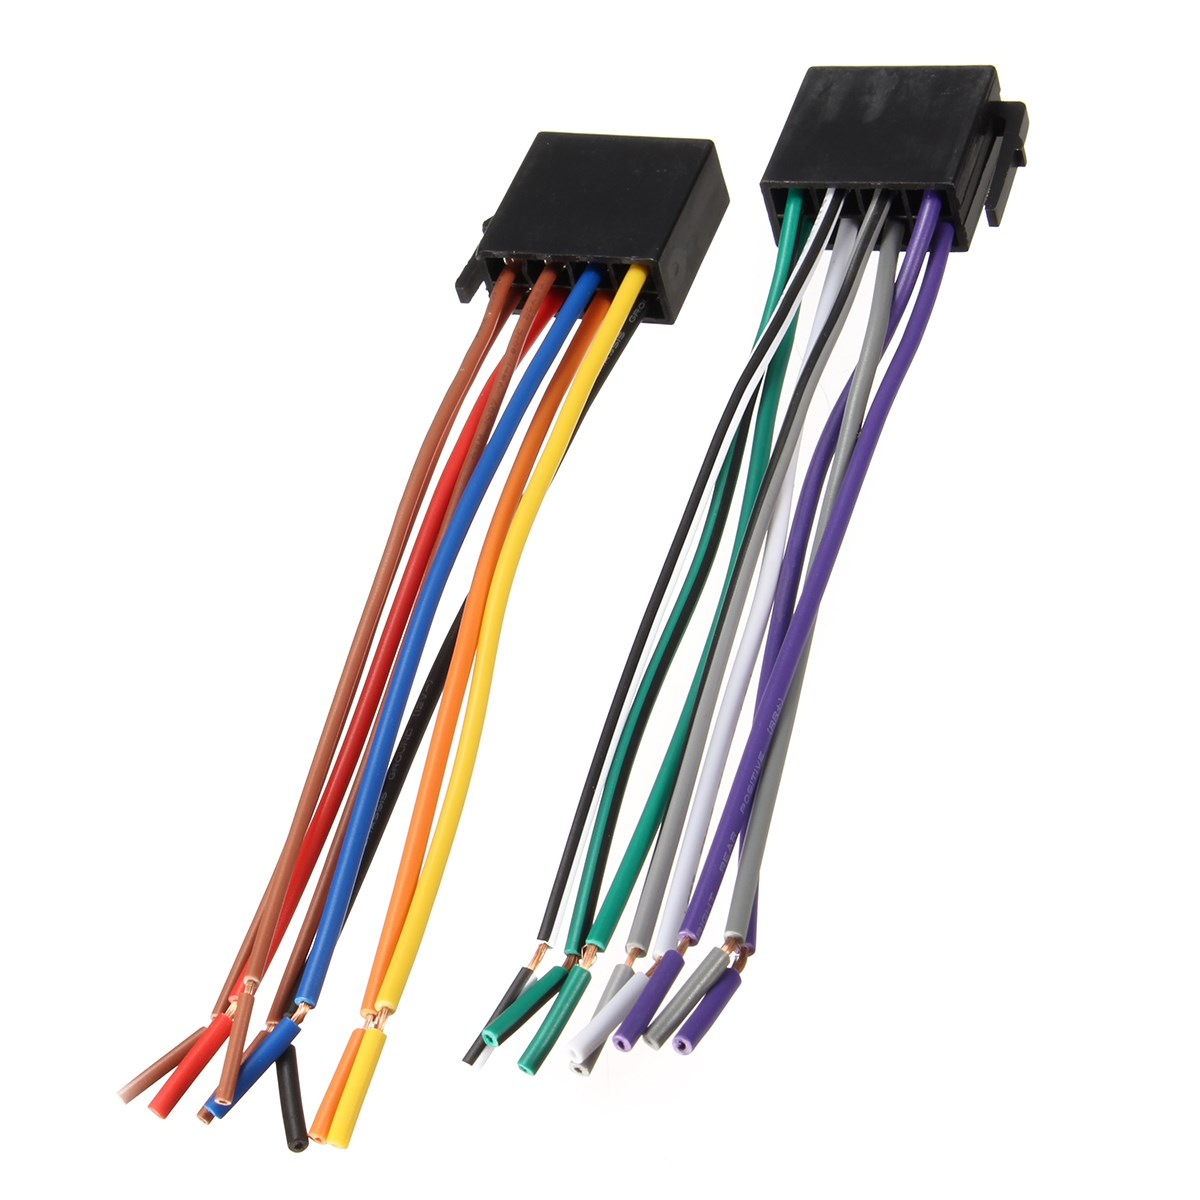 US $1.53 21% OFF|Universal Wire Harness Adapter Connector Cable Radio on 68 vw wire harness, dual car stereo wire harness, goldfish harness, vw bus regulator wiring, 2001 jetta dome light harness, vw wiring diagrams, figure 8 cat harness, vw starter wiring, besi harness, vw ignition wiring, vw coil wiring, vw engine wiring, vw beetle carburetor wiring, vw alternator wiring, vw wiring kit, vw bus wiring location, vw headlight wiring,